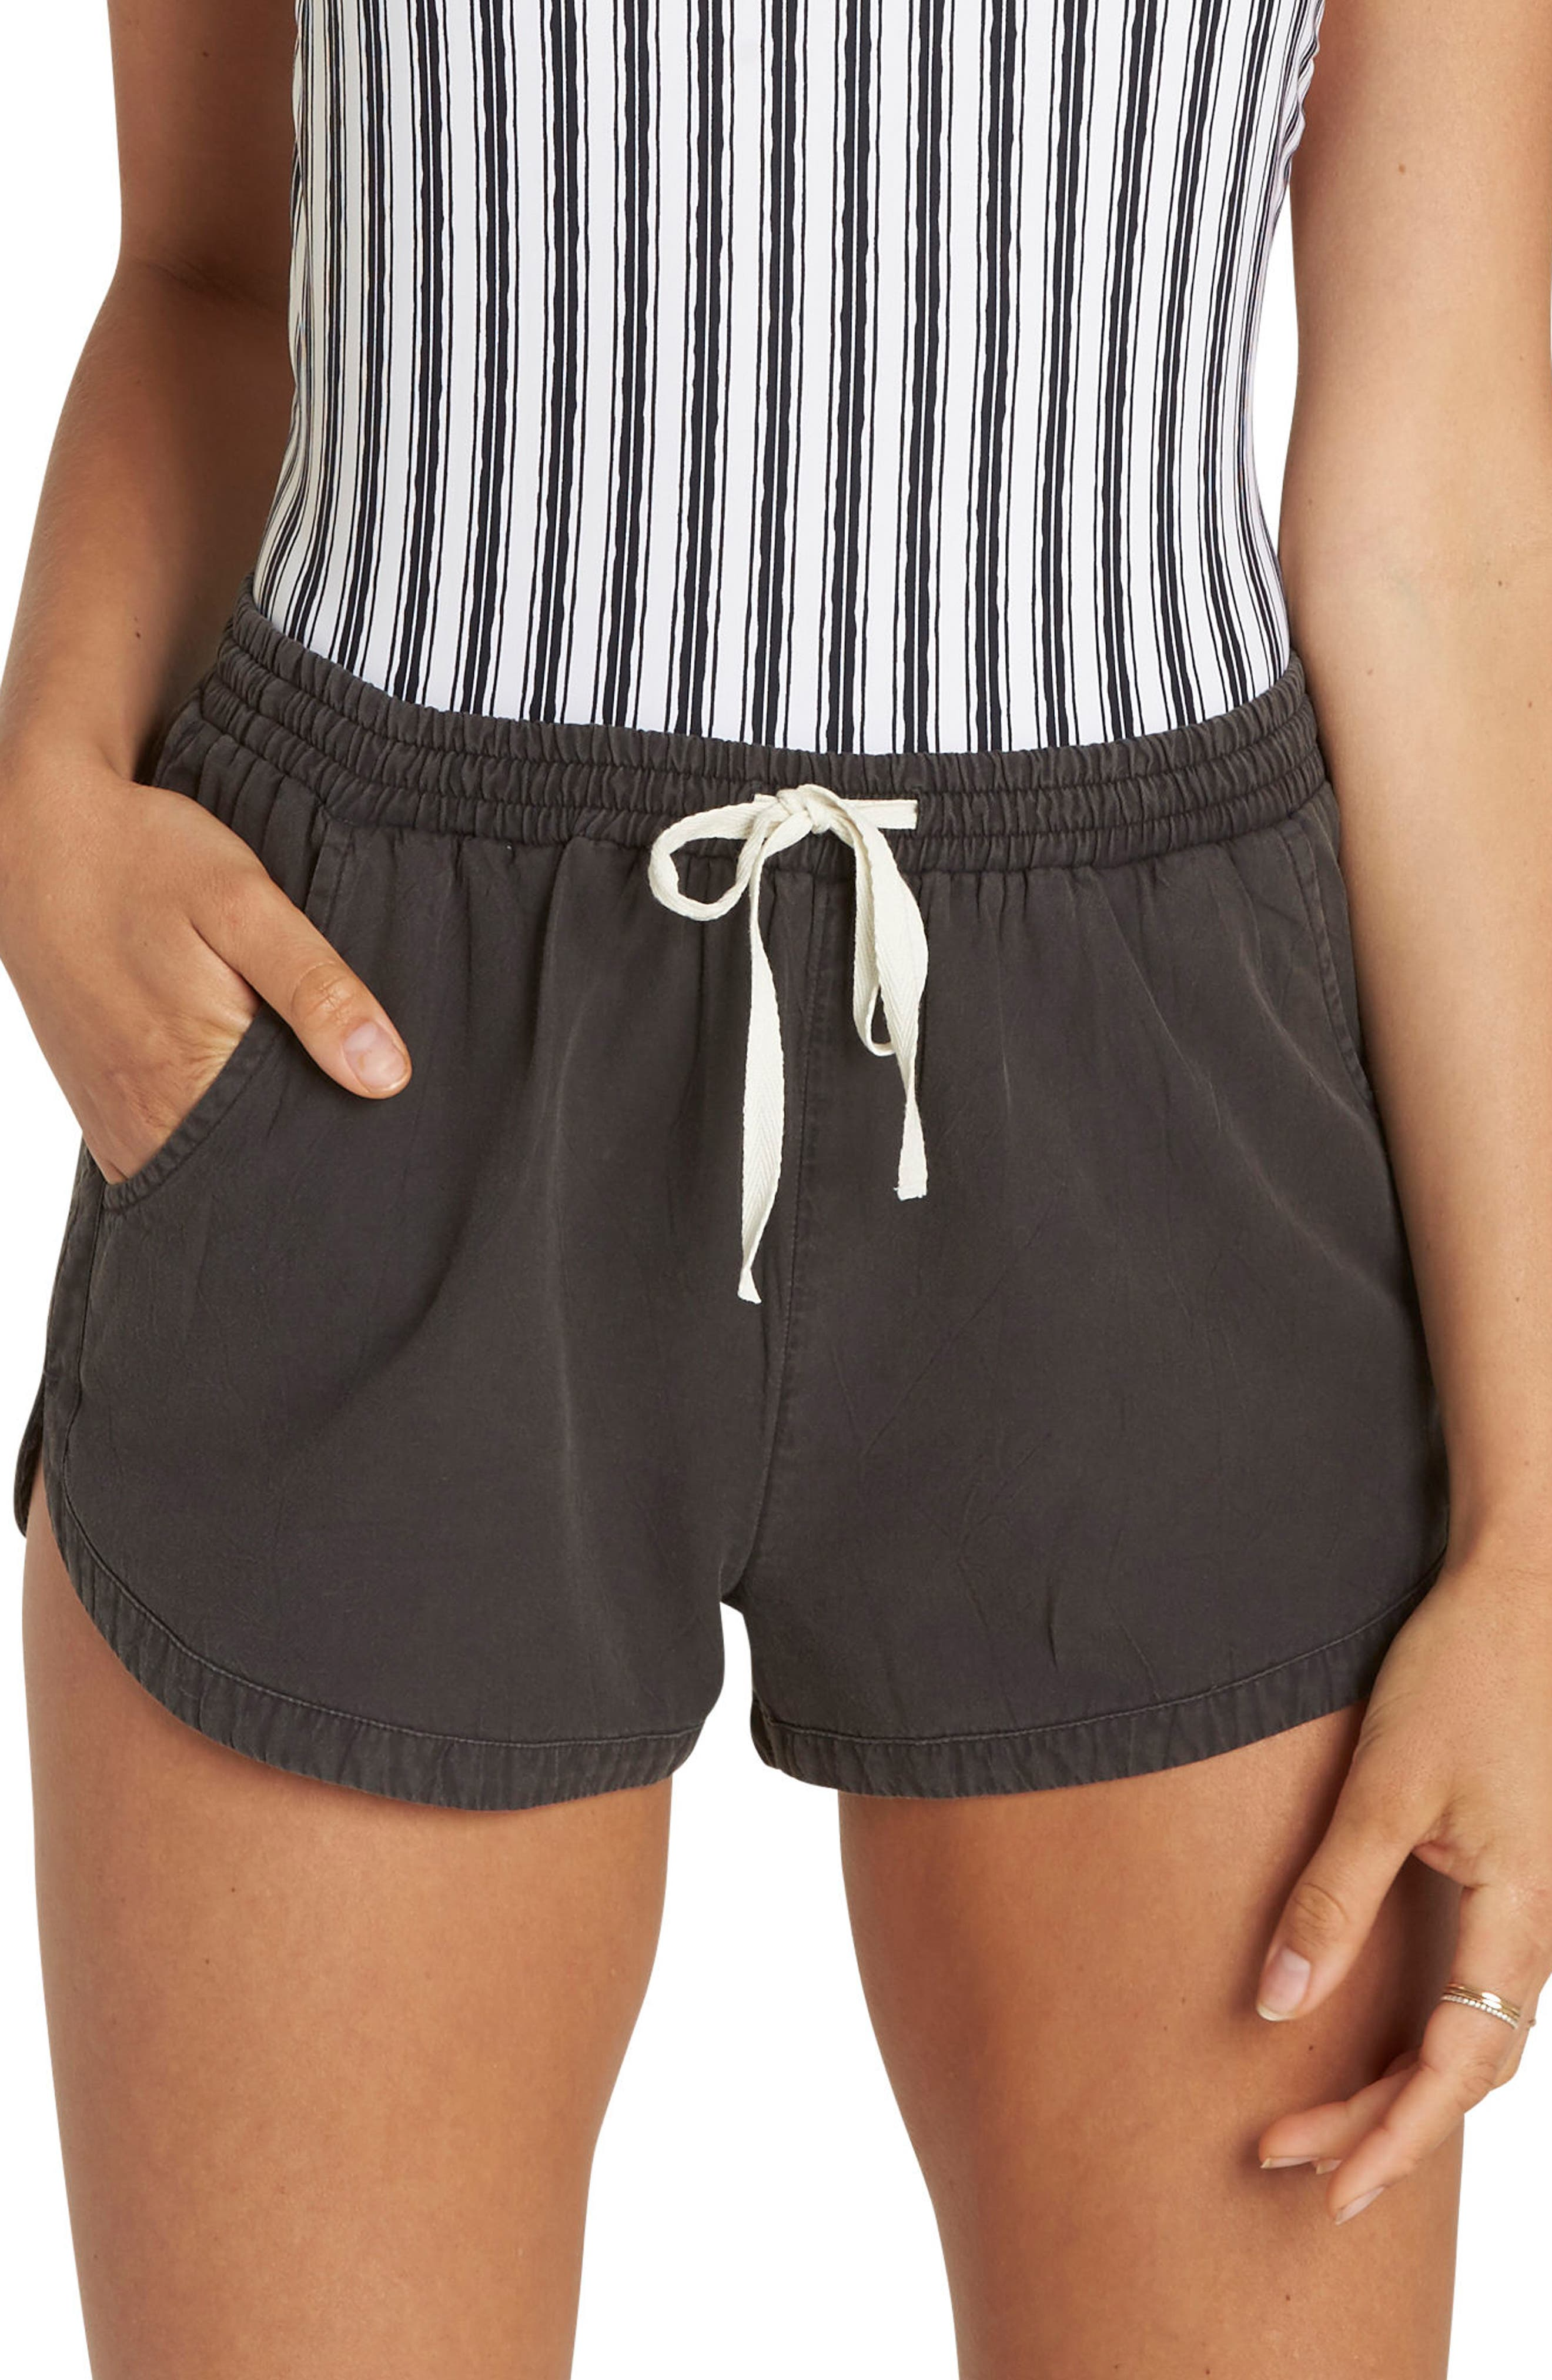 'Road Trippin' Shorts,                         Main,                         color, 001